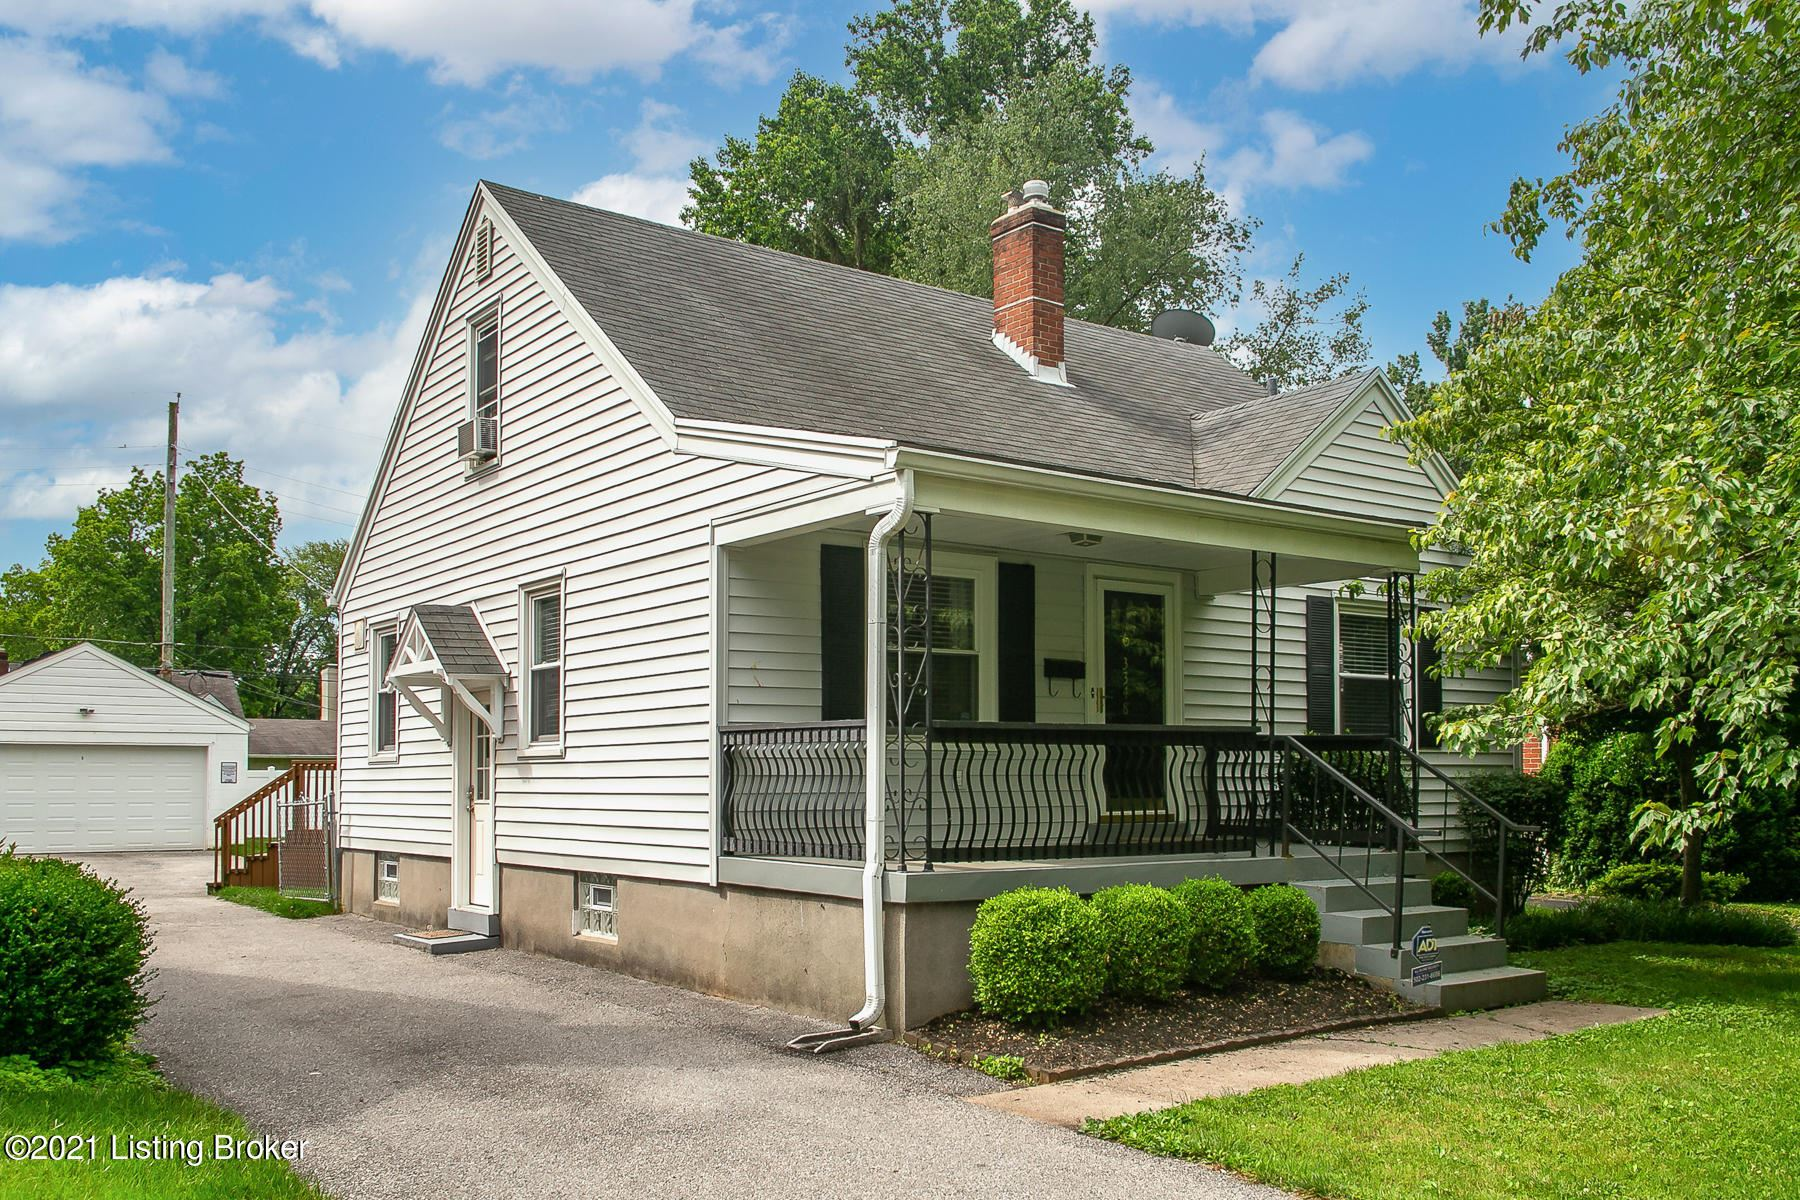 Photo for 3348 Dayton Ave, Louisville, KY 40207 (MLS # 1588005)